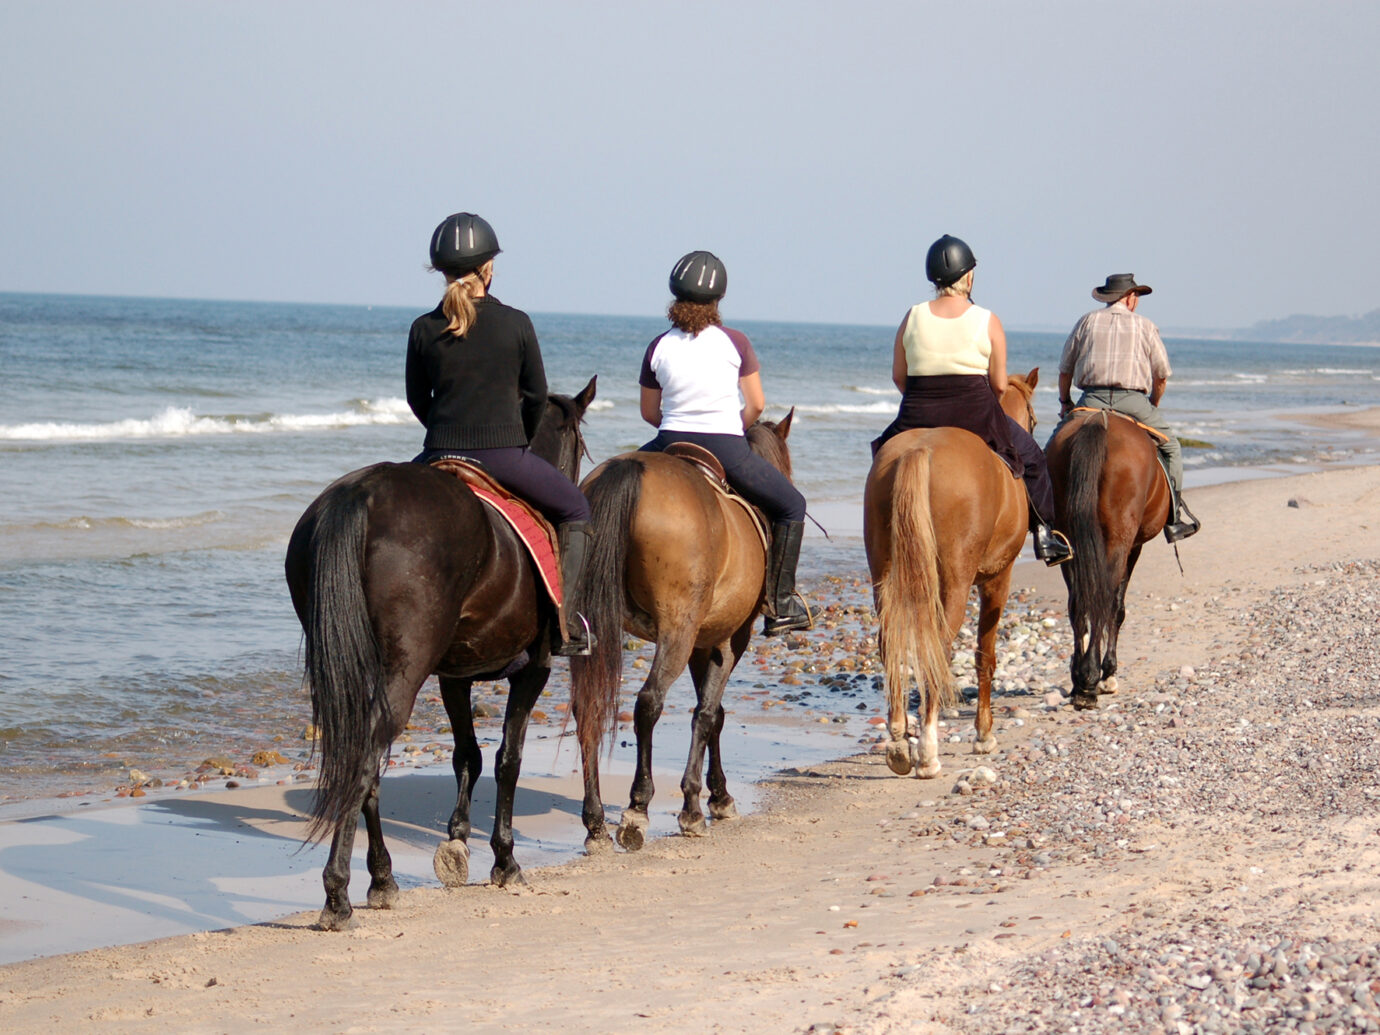 Beach horse-riding in summertime